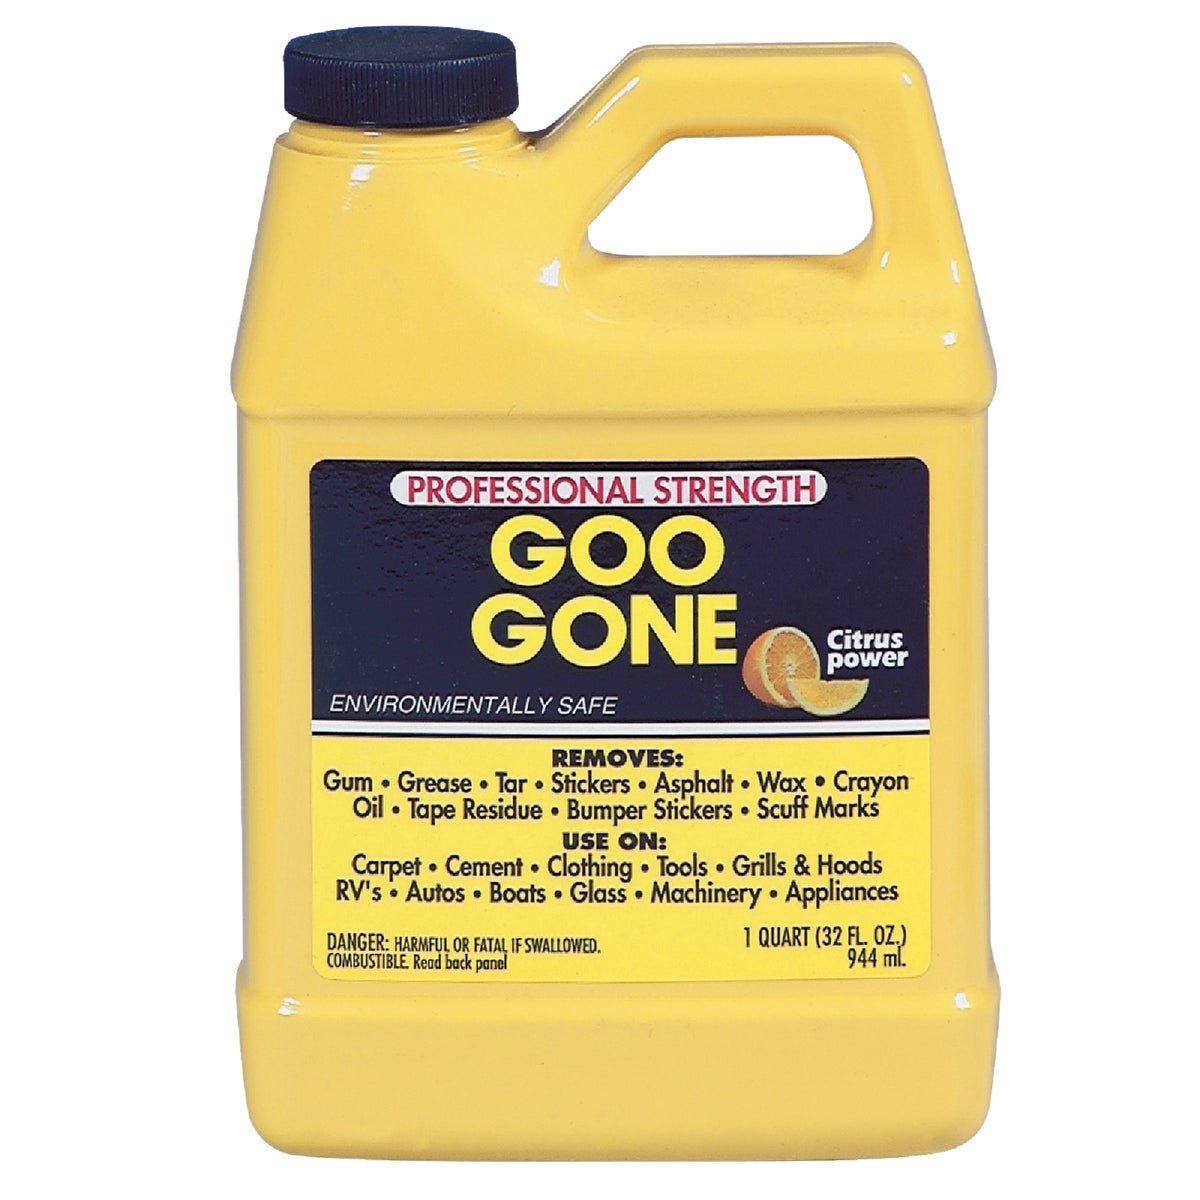 Goo Gone Professional Strength All-Purpose Cleaner, 2112